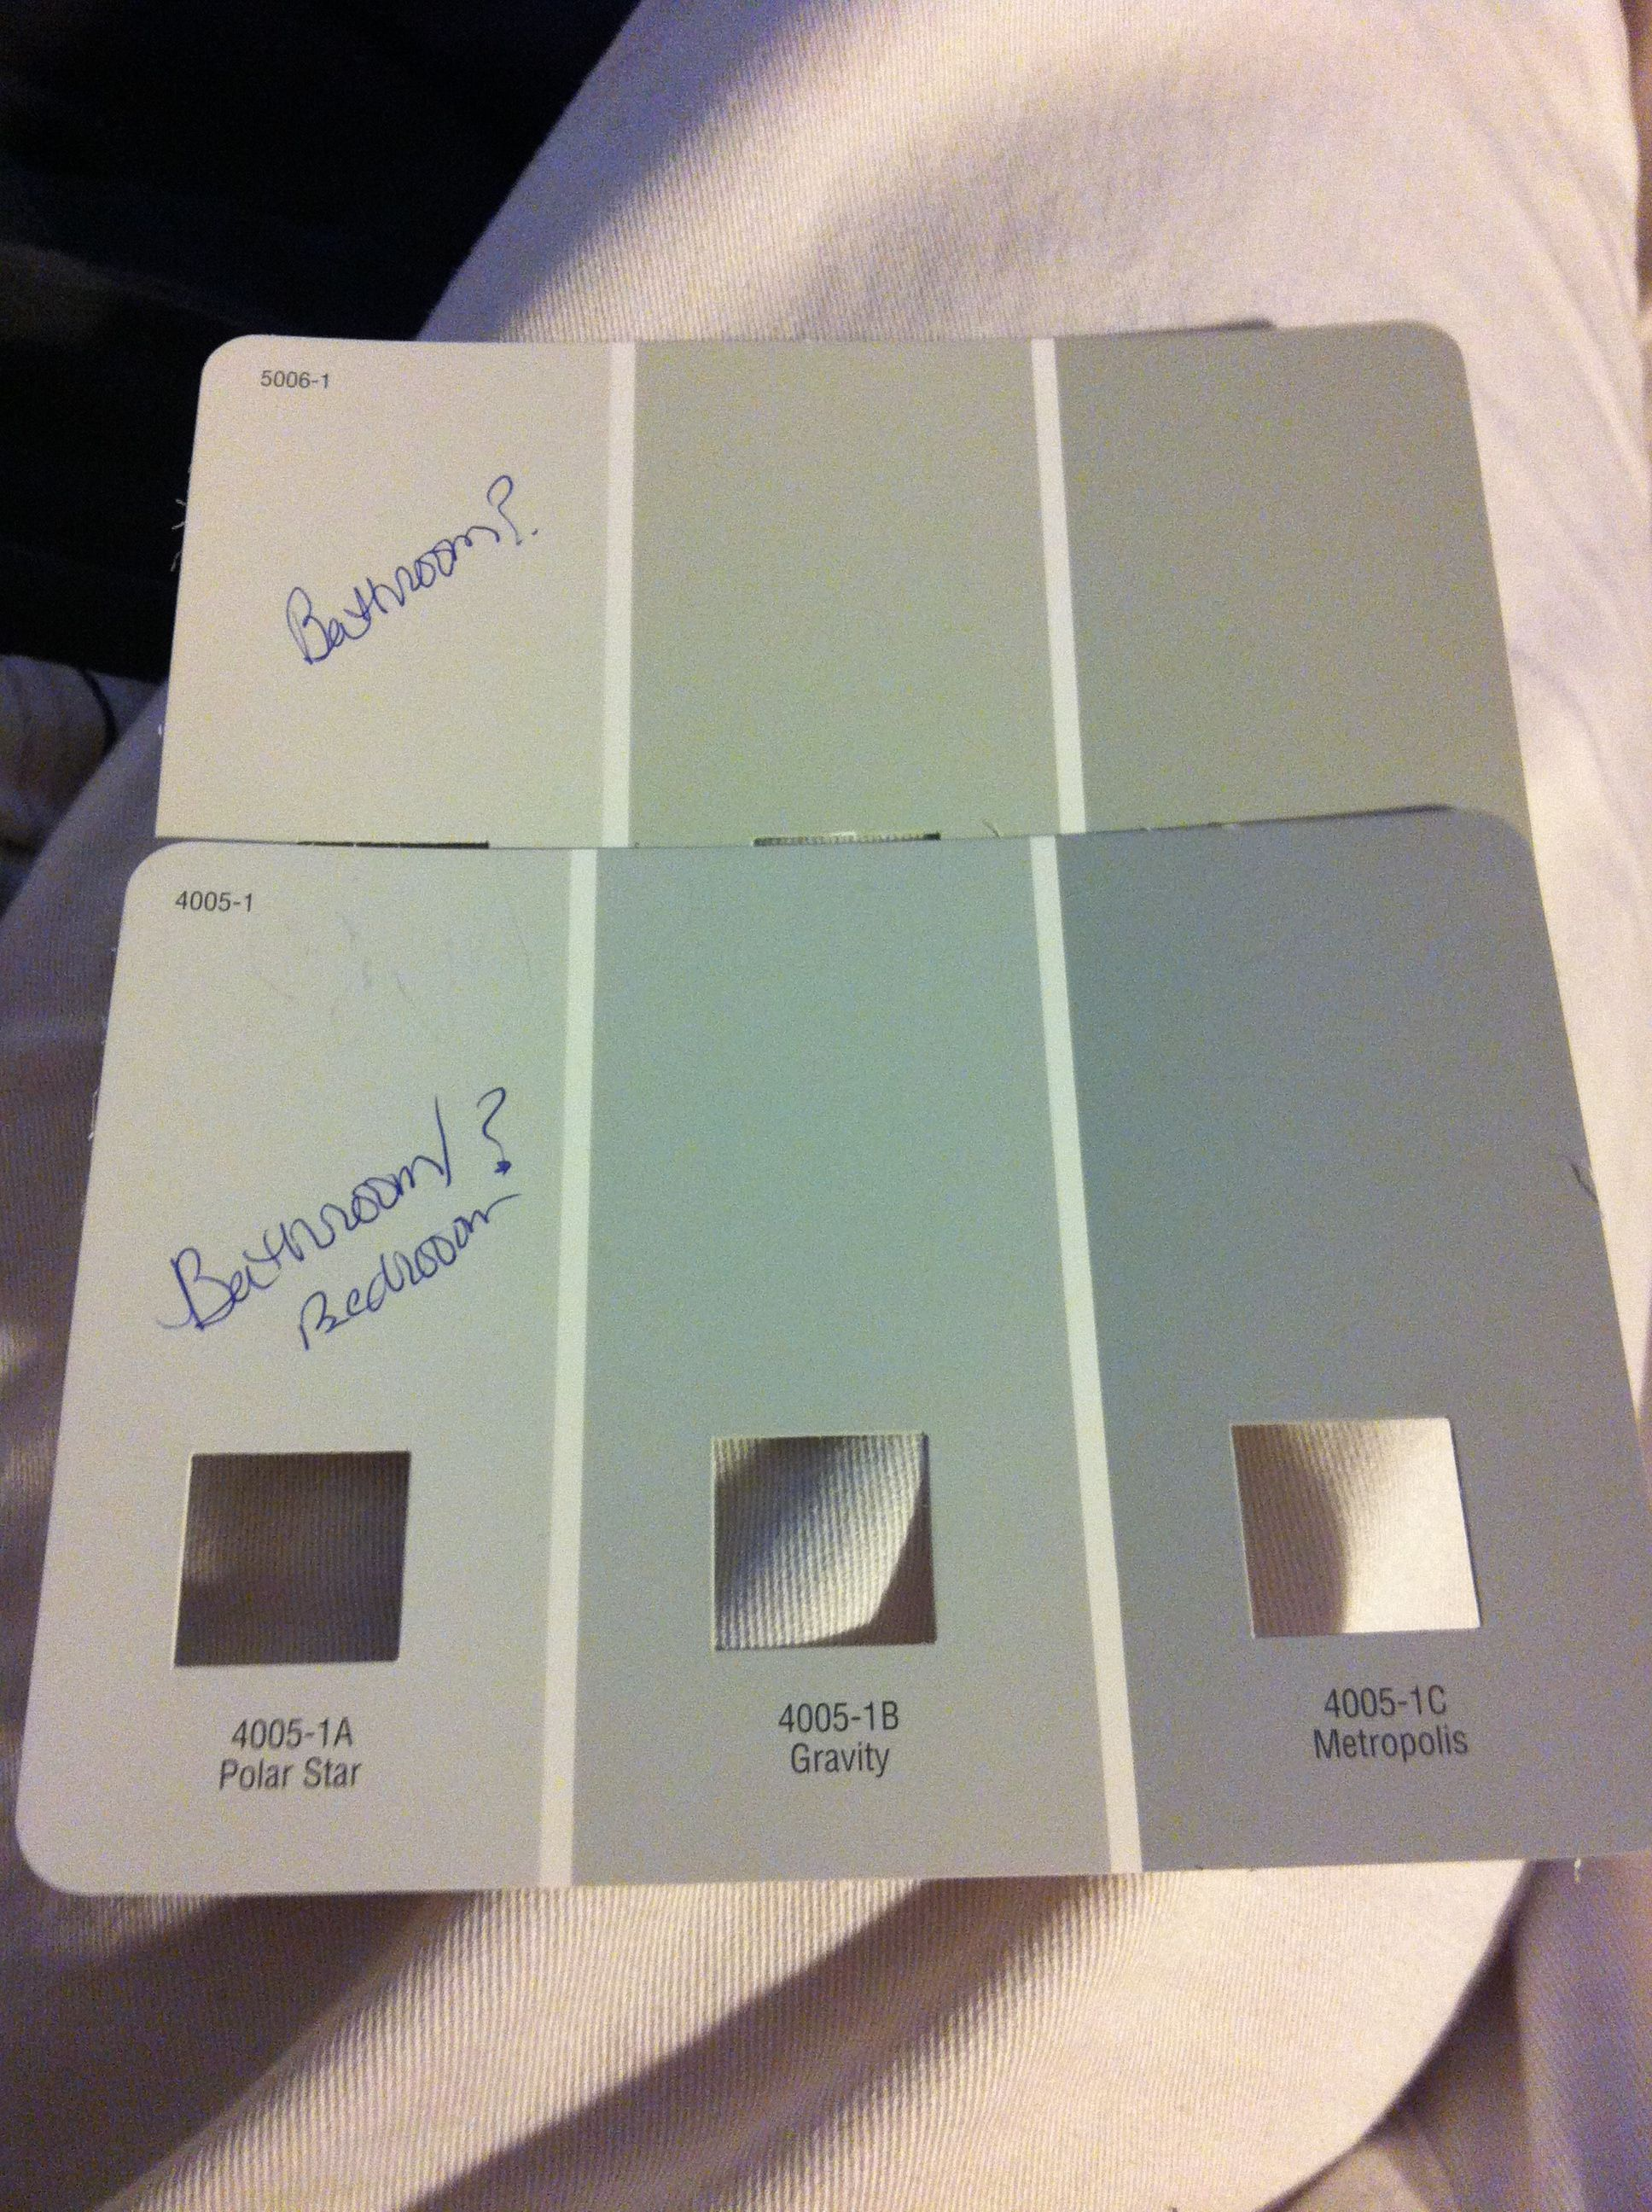 Possible paint colors valspar polar star gravity for the bedroom and comet dust norte dame for the bathroom